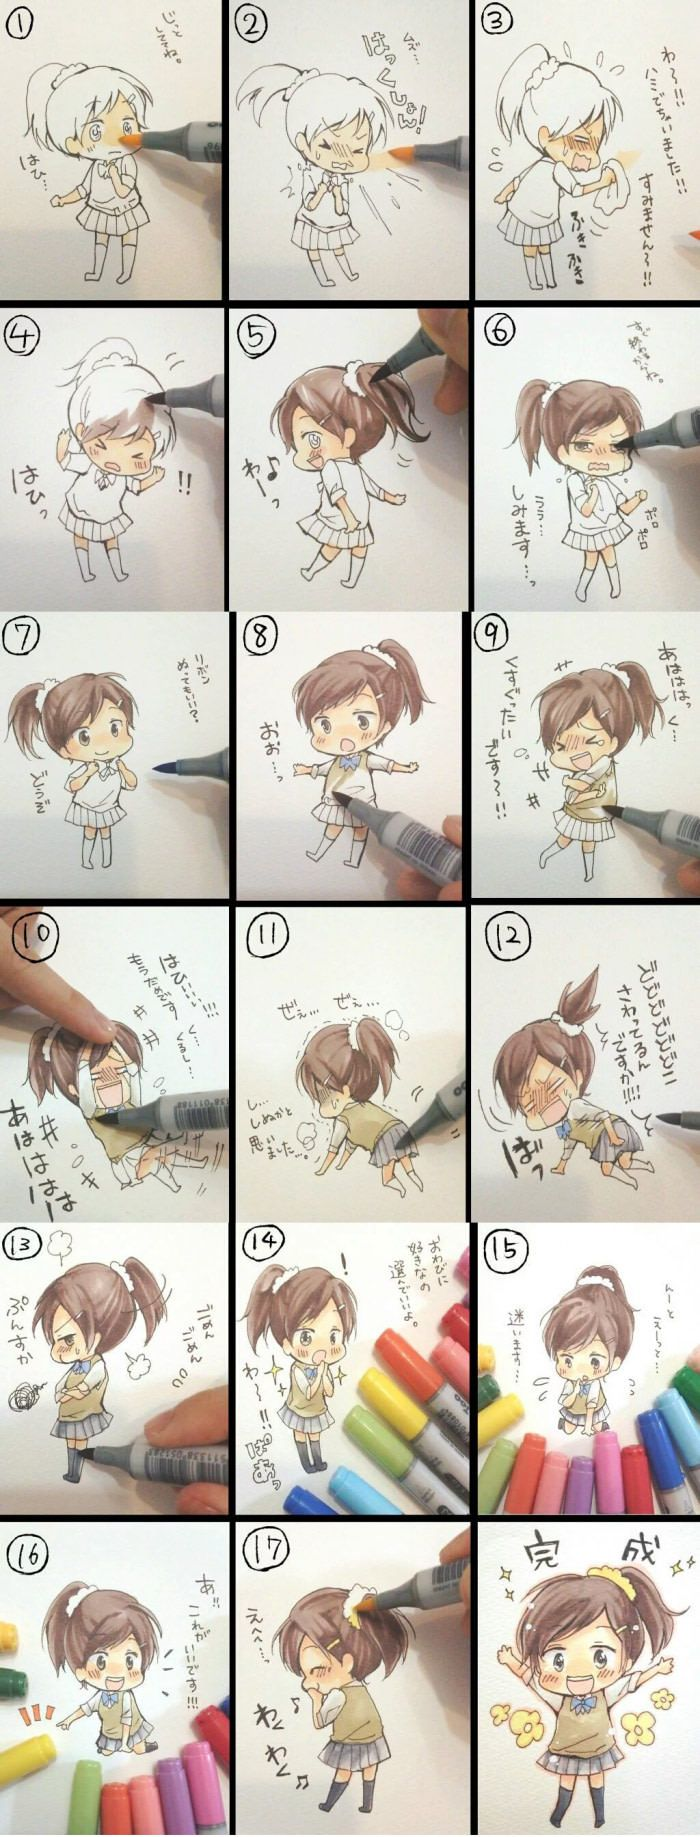 How to draw a manga character